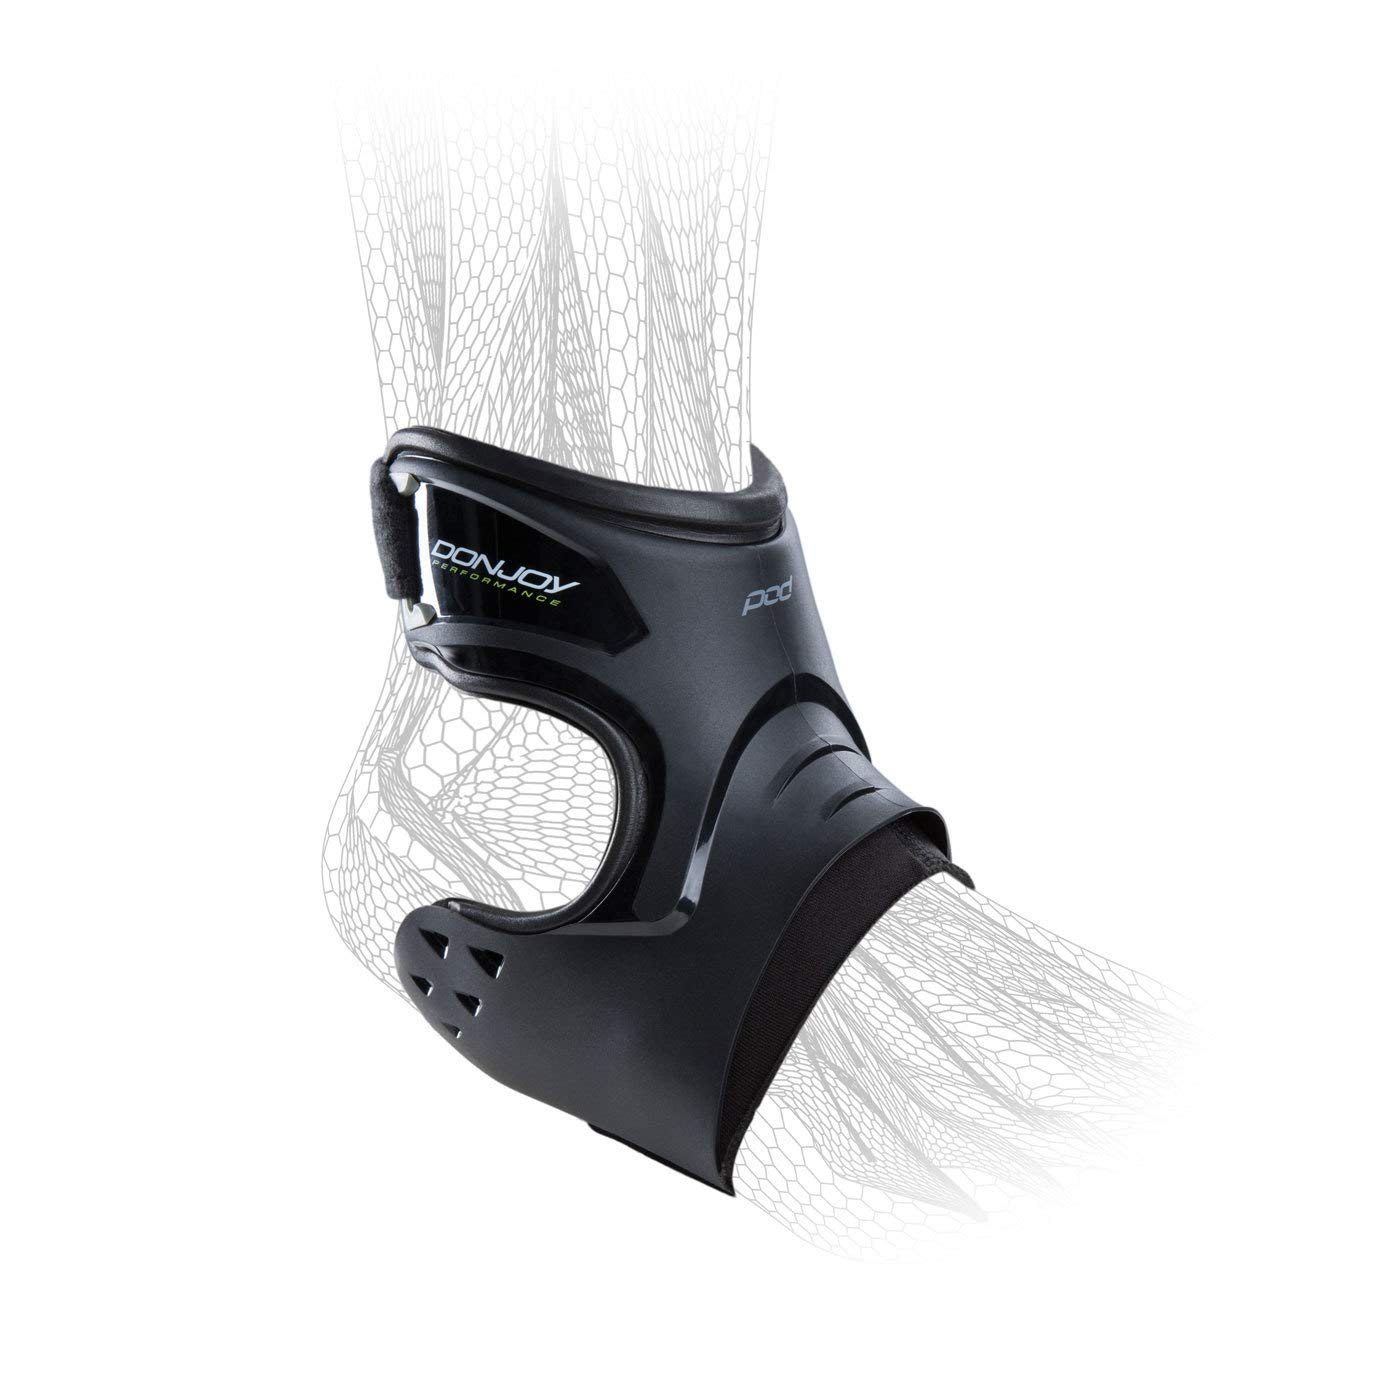 DonJoy Performance POD Ankle Brace Pair - Right and Left - Black - Small - Value Bundle by DonJoy Performance (Image #2)